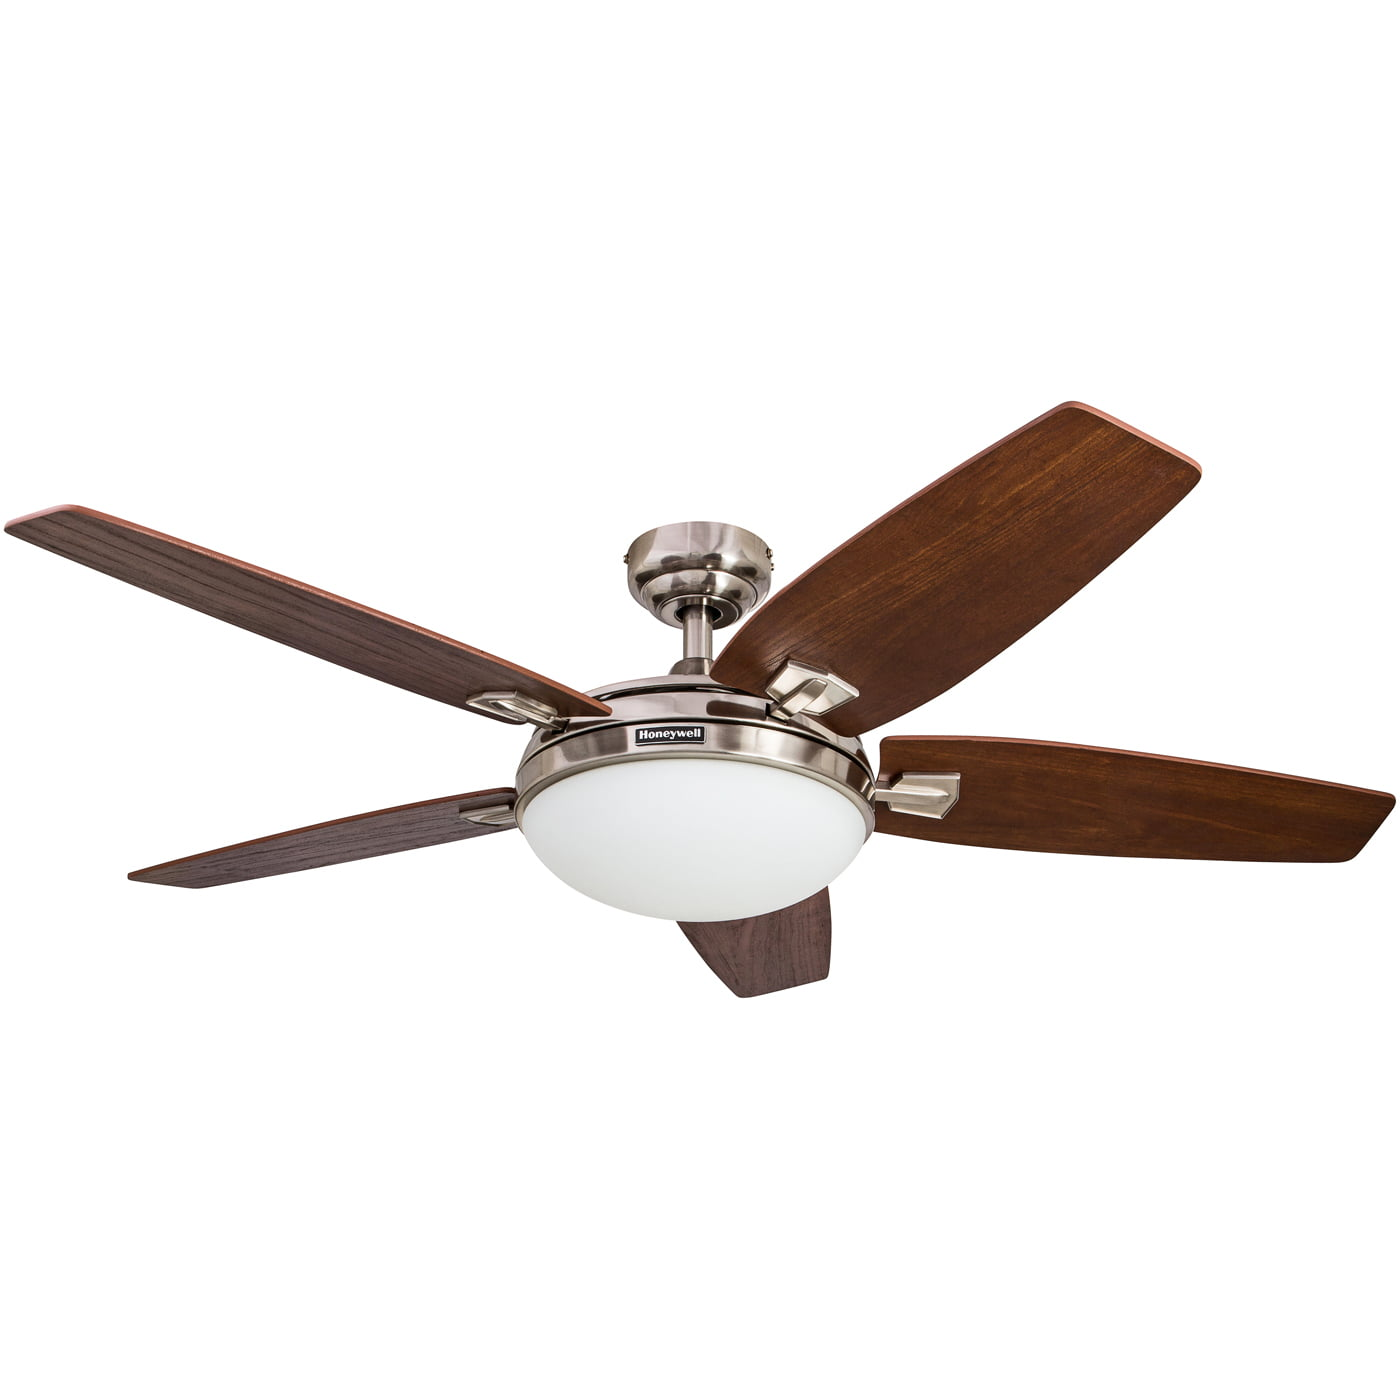 "48"" Honeywell Carmel Brushed Nickel Ceiling Fan with Integrated Light and Remote by HKC"